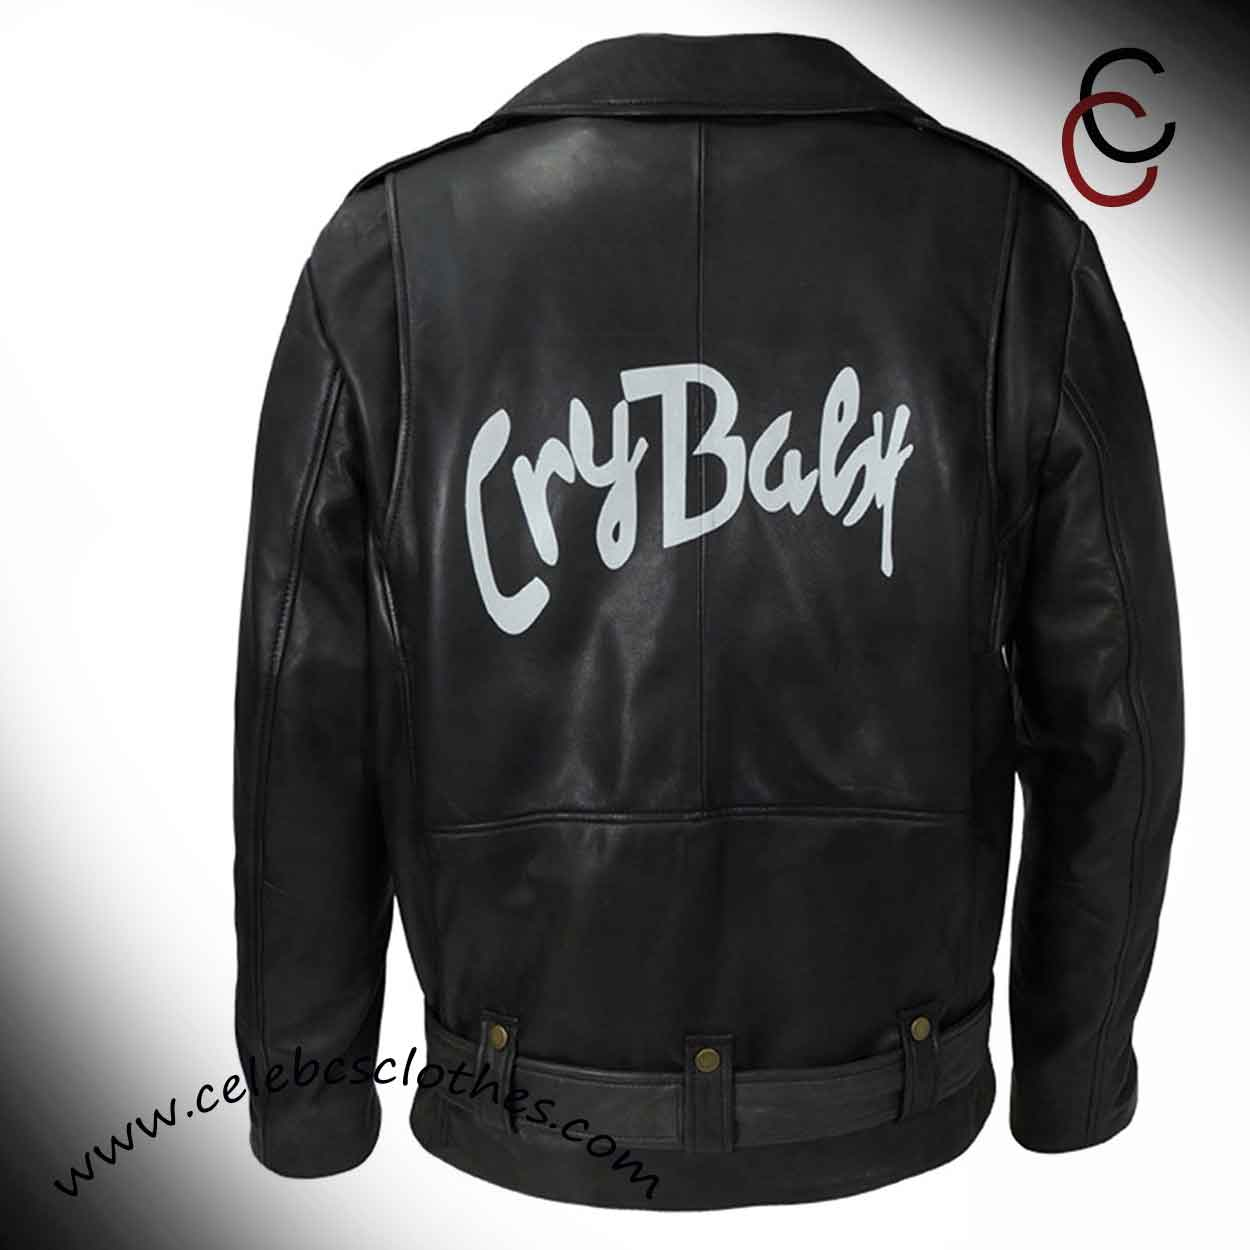 024319001 Cry Baby Jacket | Johnny Depp Motorcycle Cry Baby Leather Jacket ...